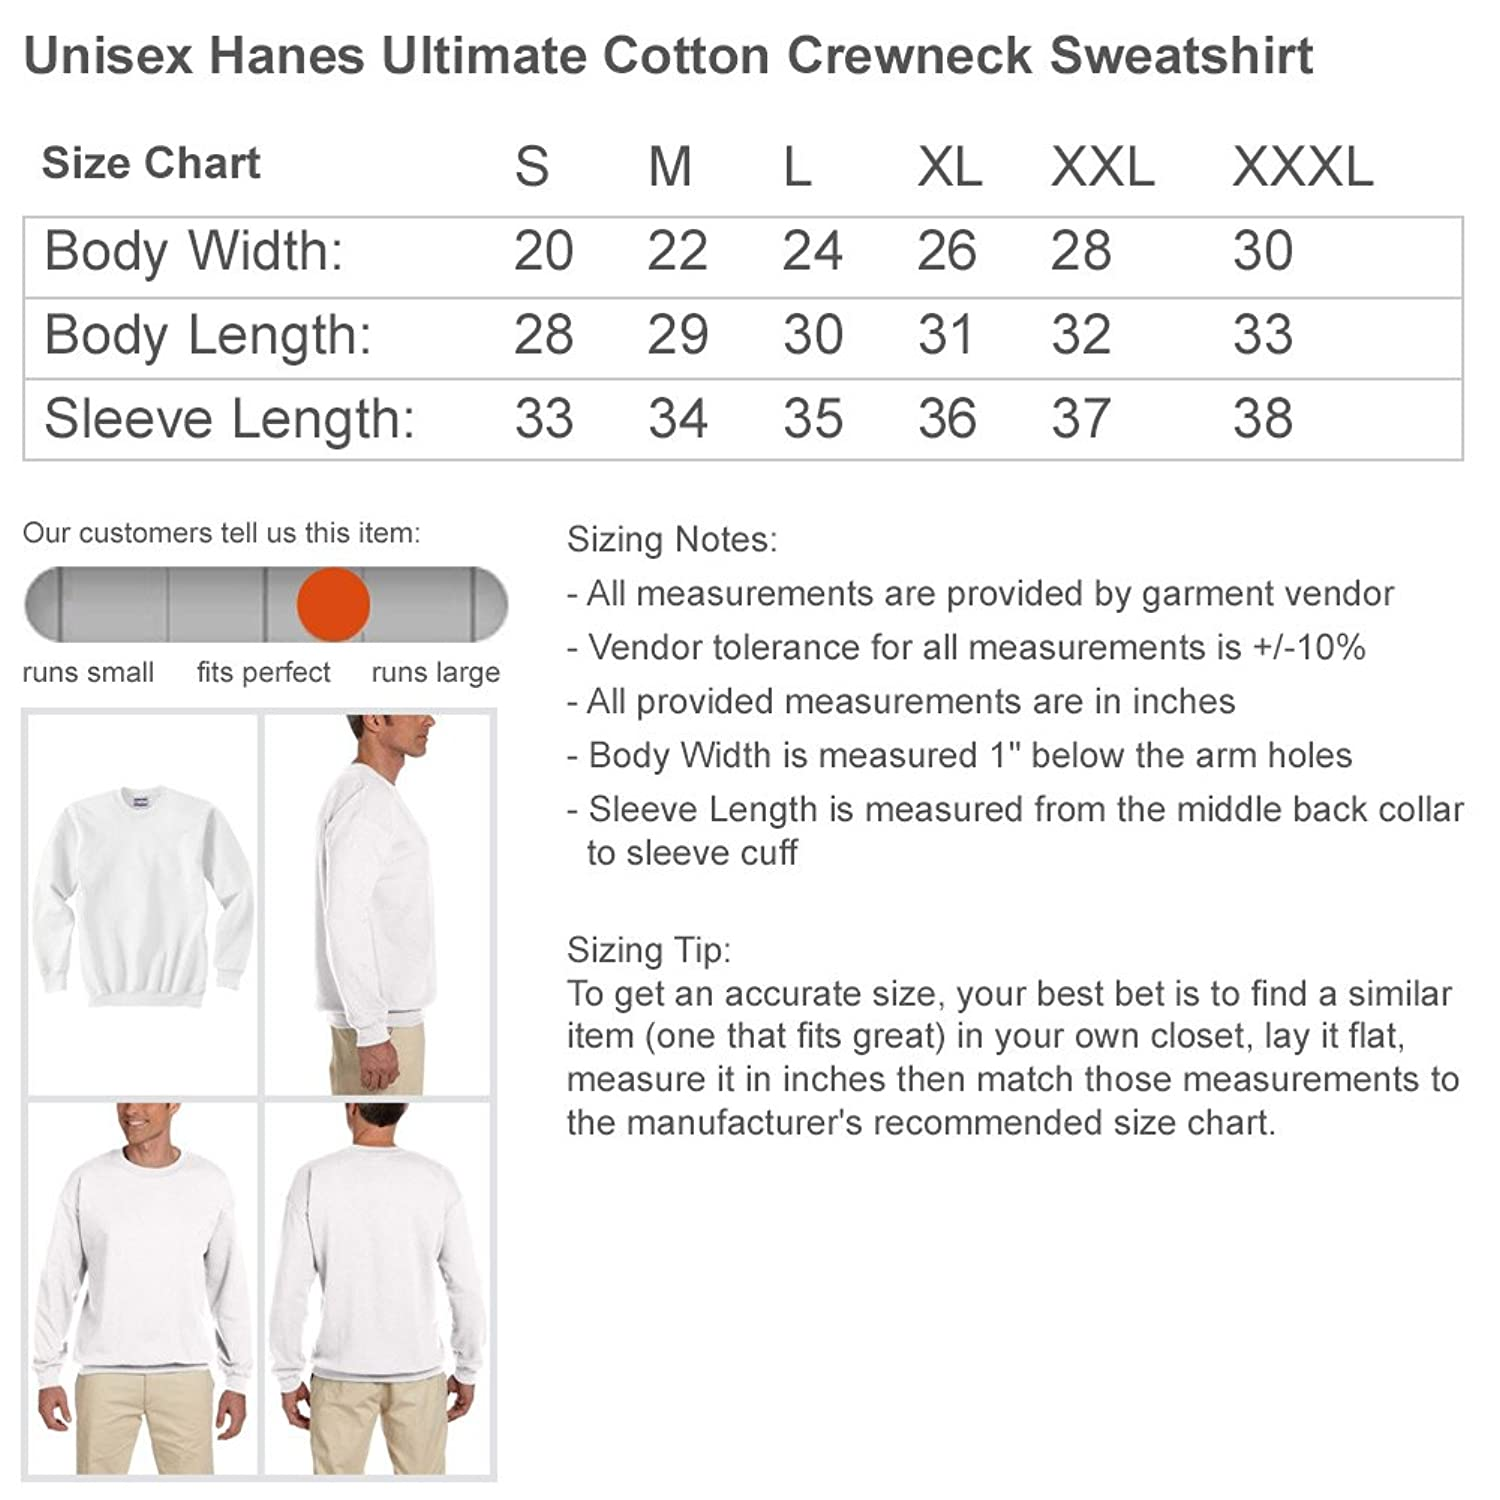 amazon com feliz navidad trump unisex hanes ultimate crewneck